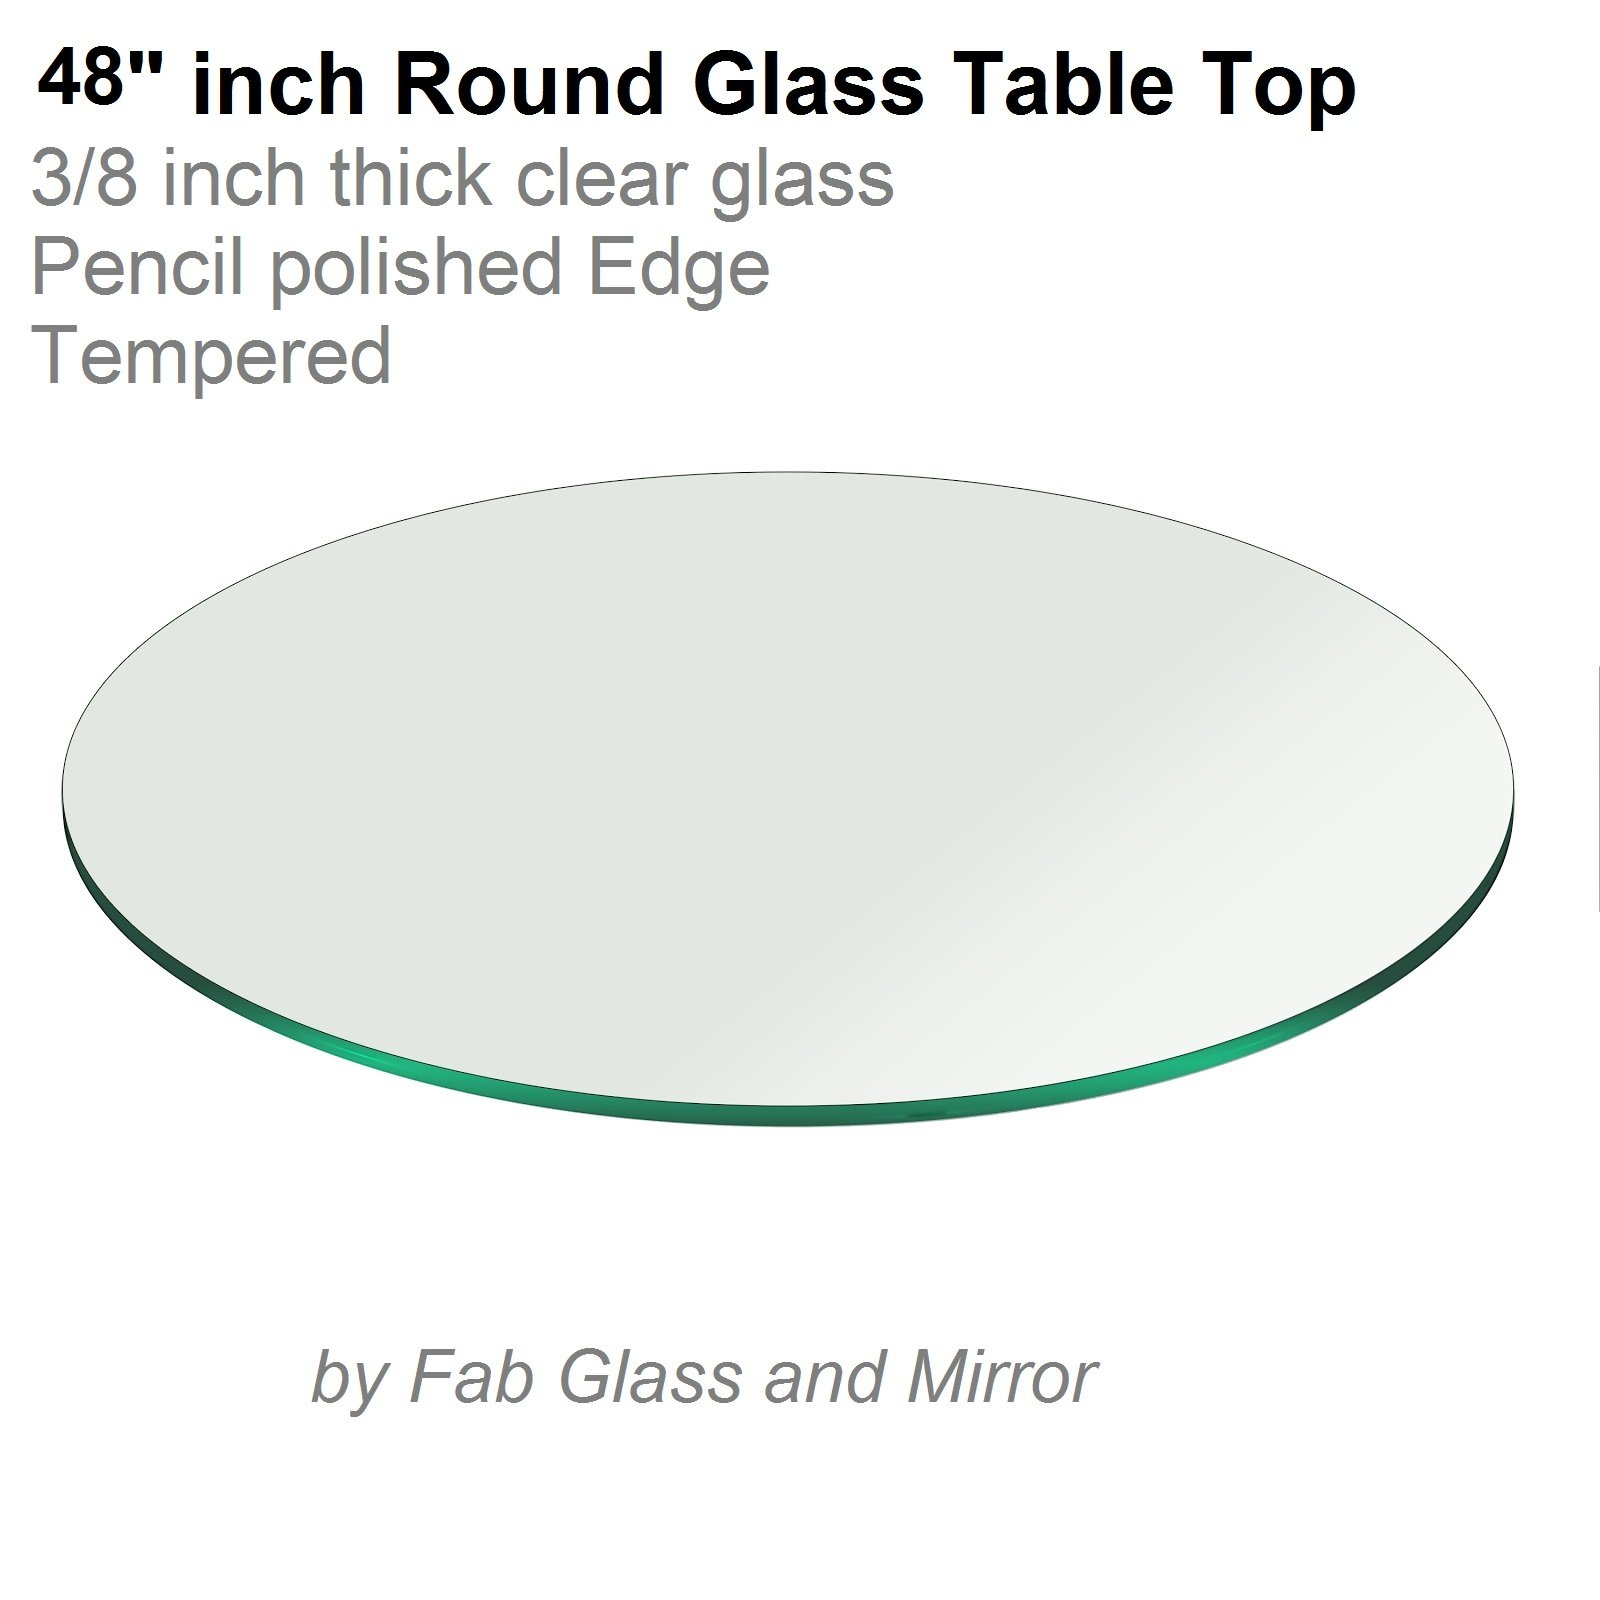 48'' Inch Round Glass Table Top 3/8'' Thick Pencil Polish Edge Tempered by Fab Glass and Mirror